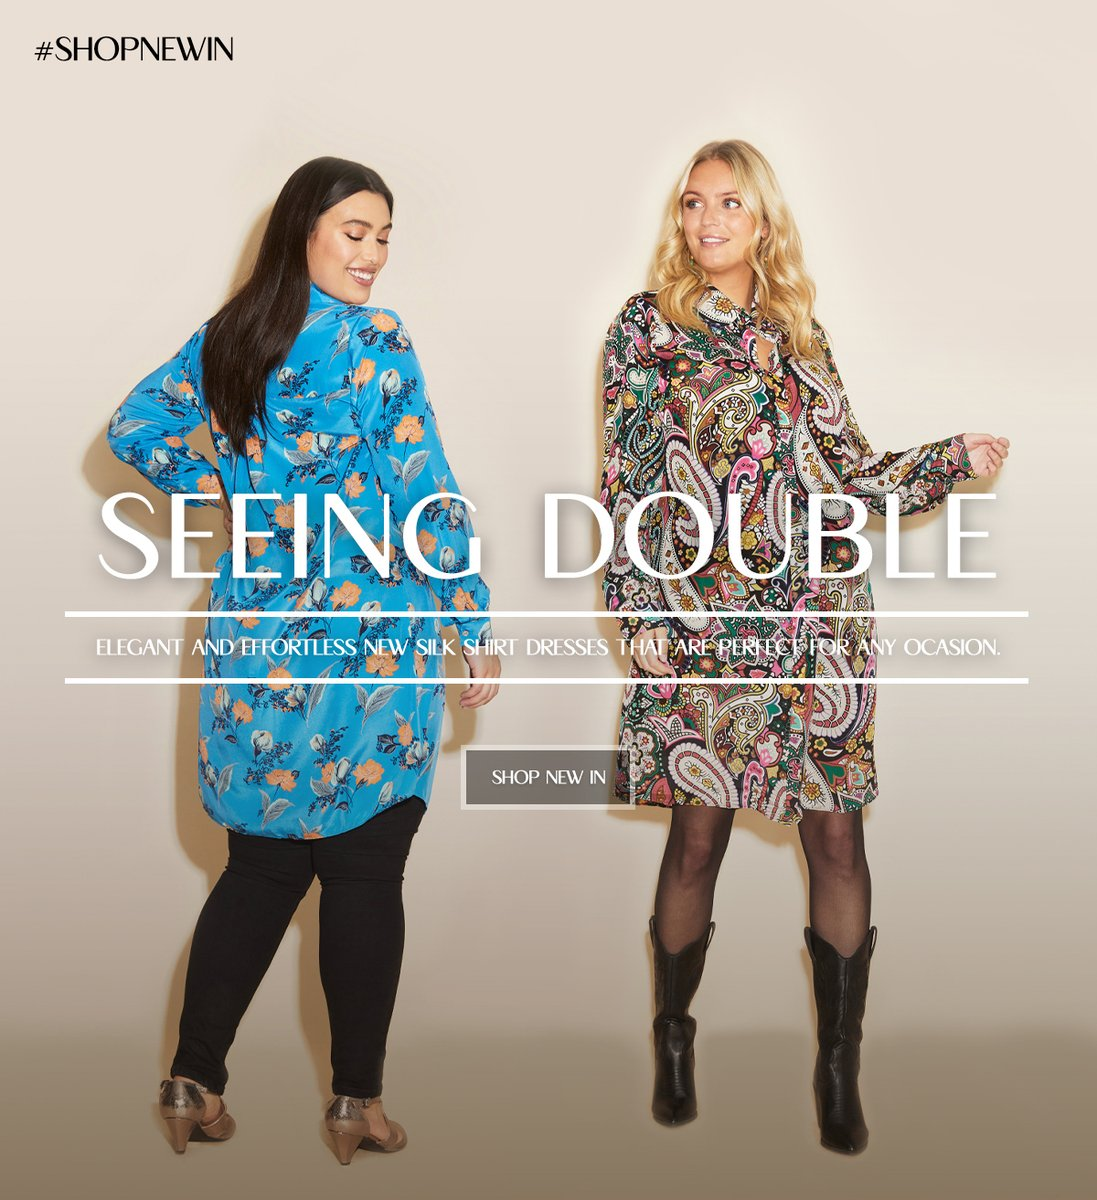 test Twitter Media - Silk shirt dresses by #annascholz #plussize #plussizefashion https://t.co/u33BnLAx8O https://t.co/q883pihg80